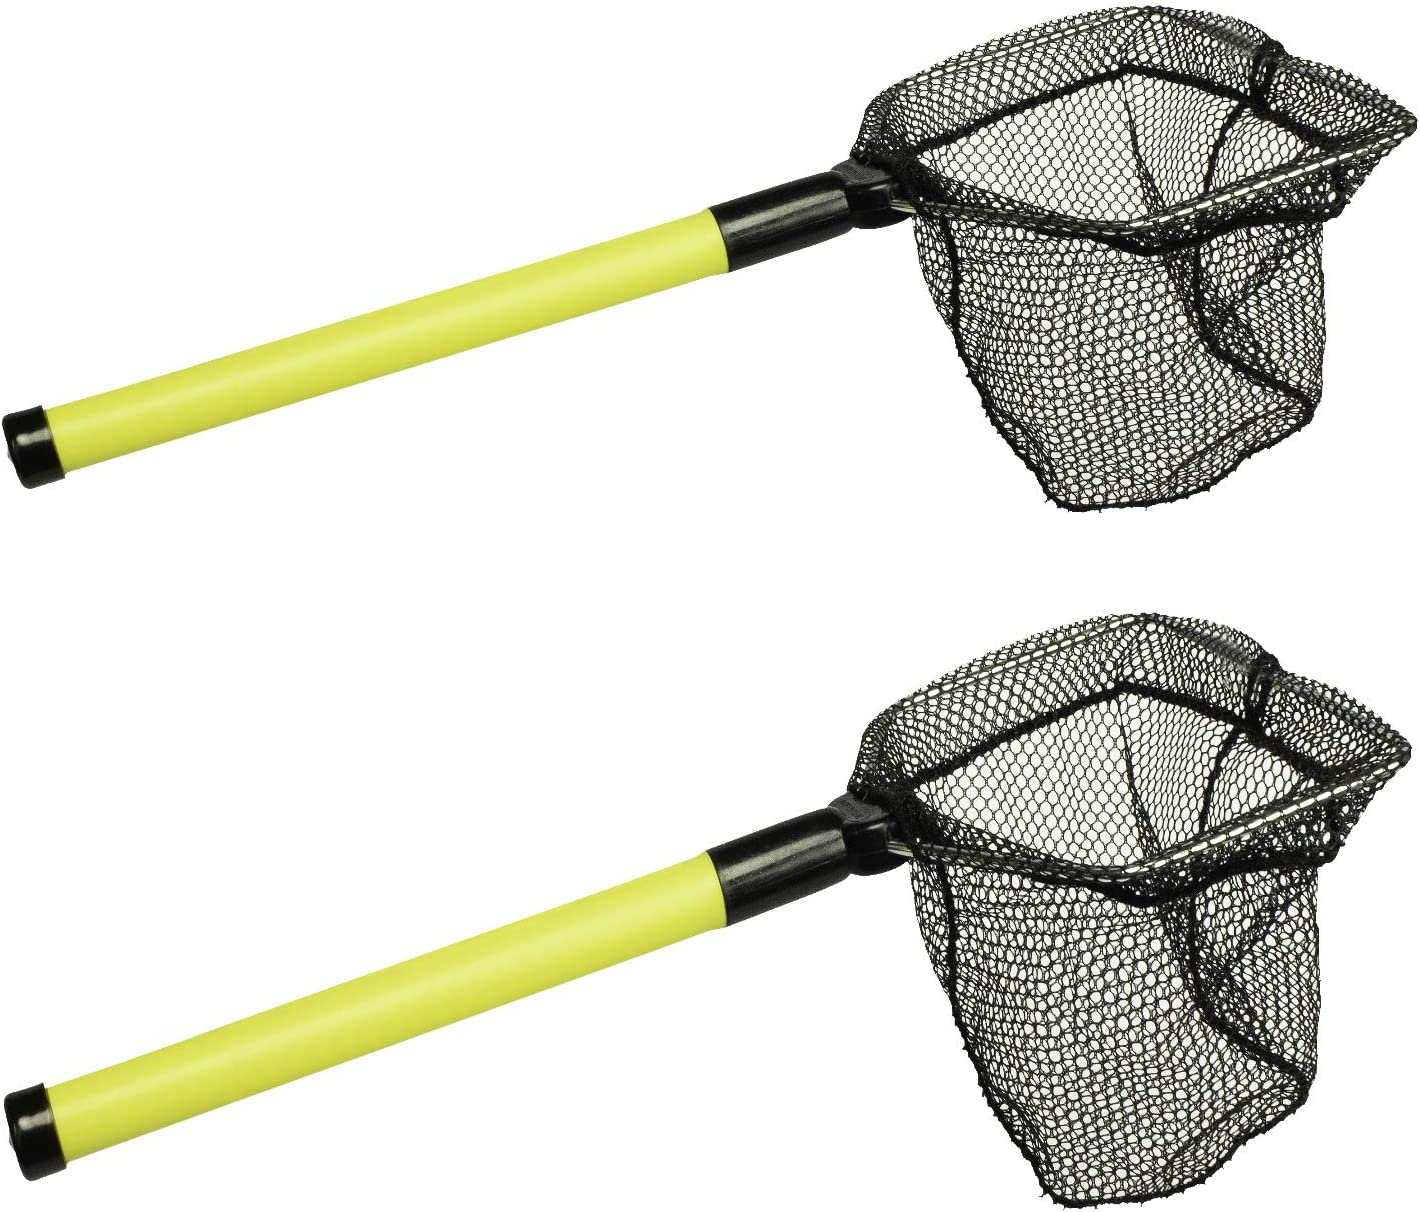 EGO Floating Bait Net, Great for Live Wells, Compact andDurable Plastic That Floats, Salt & Freshwater, Colors MayVary, Flexi Handle & 3/16 Mesh